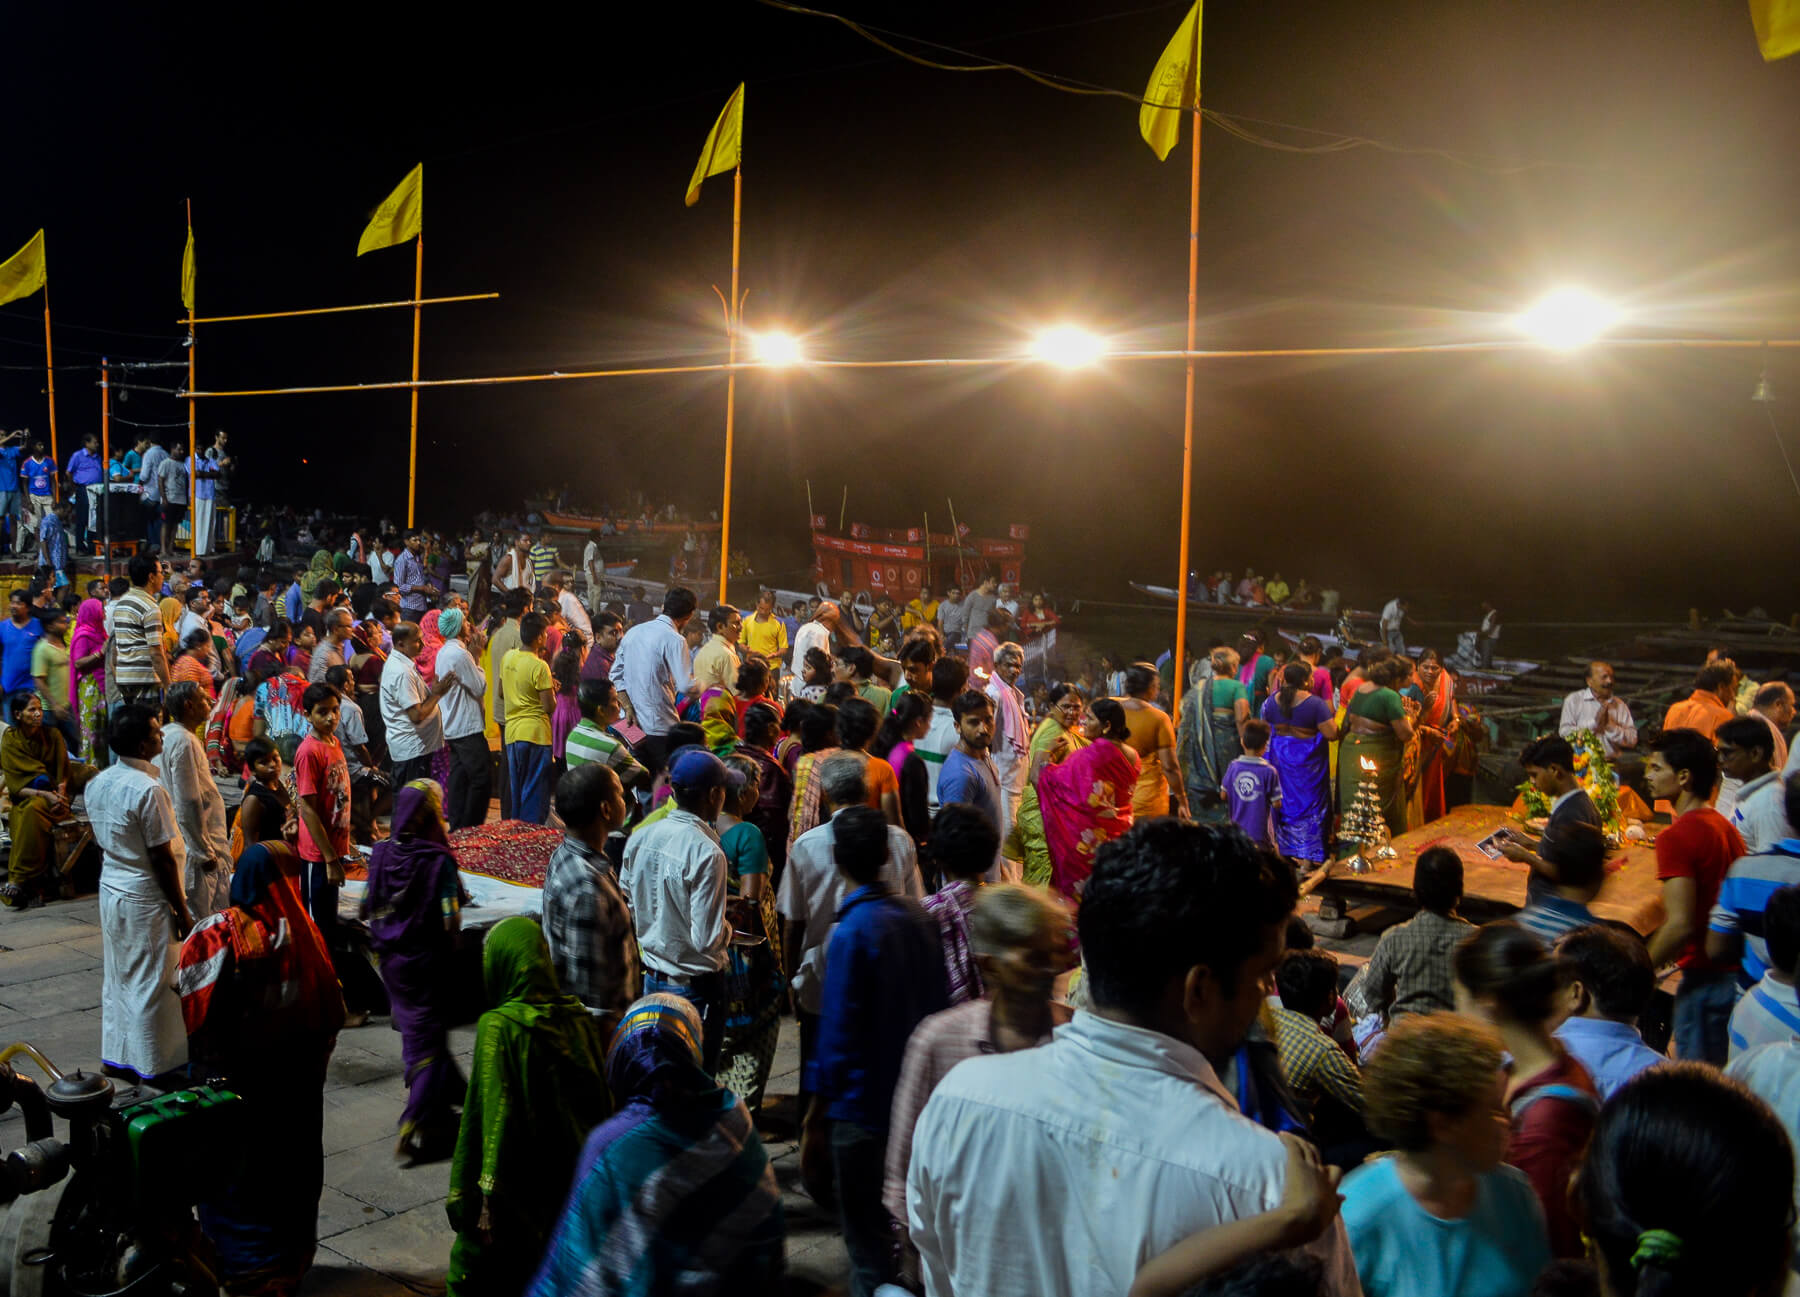 Mass crowds along the river in India after dark